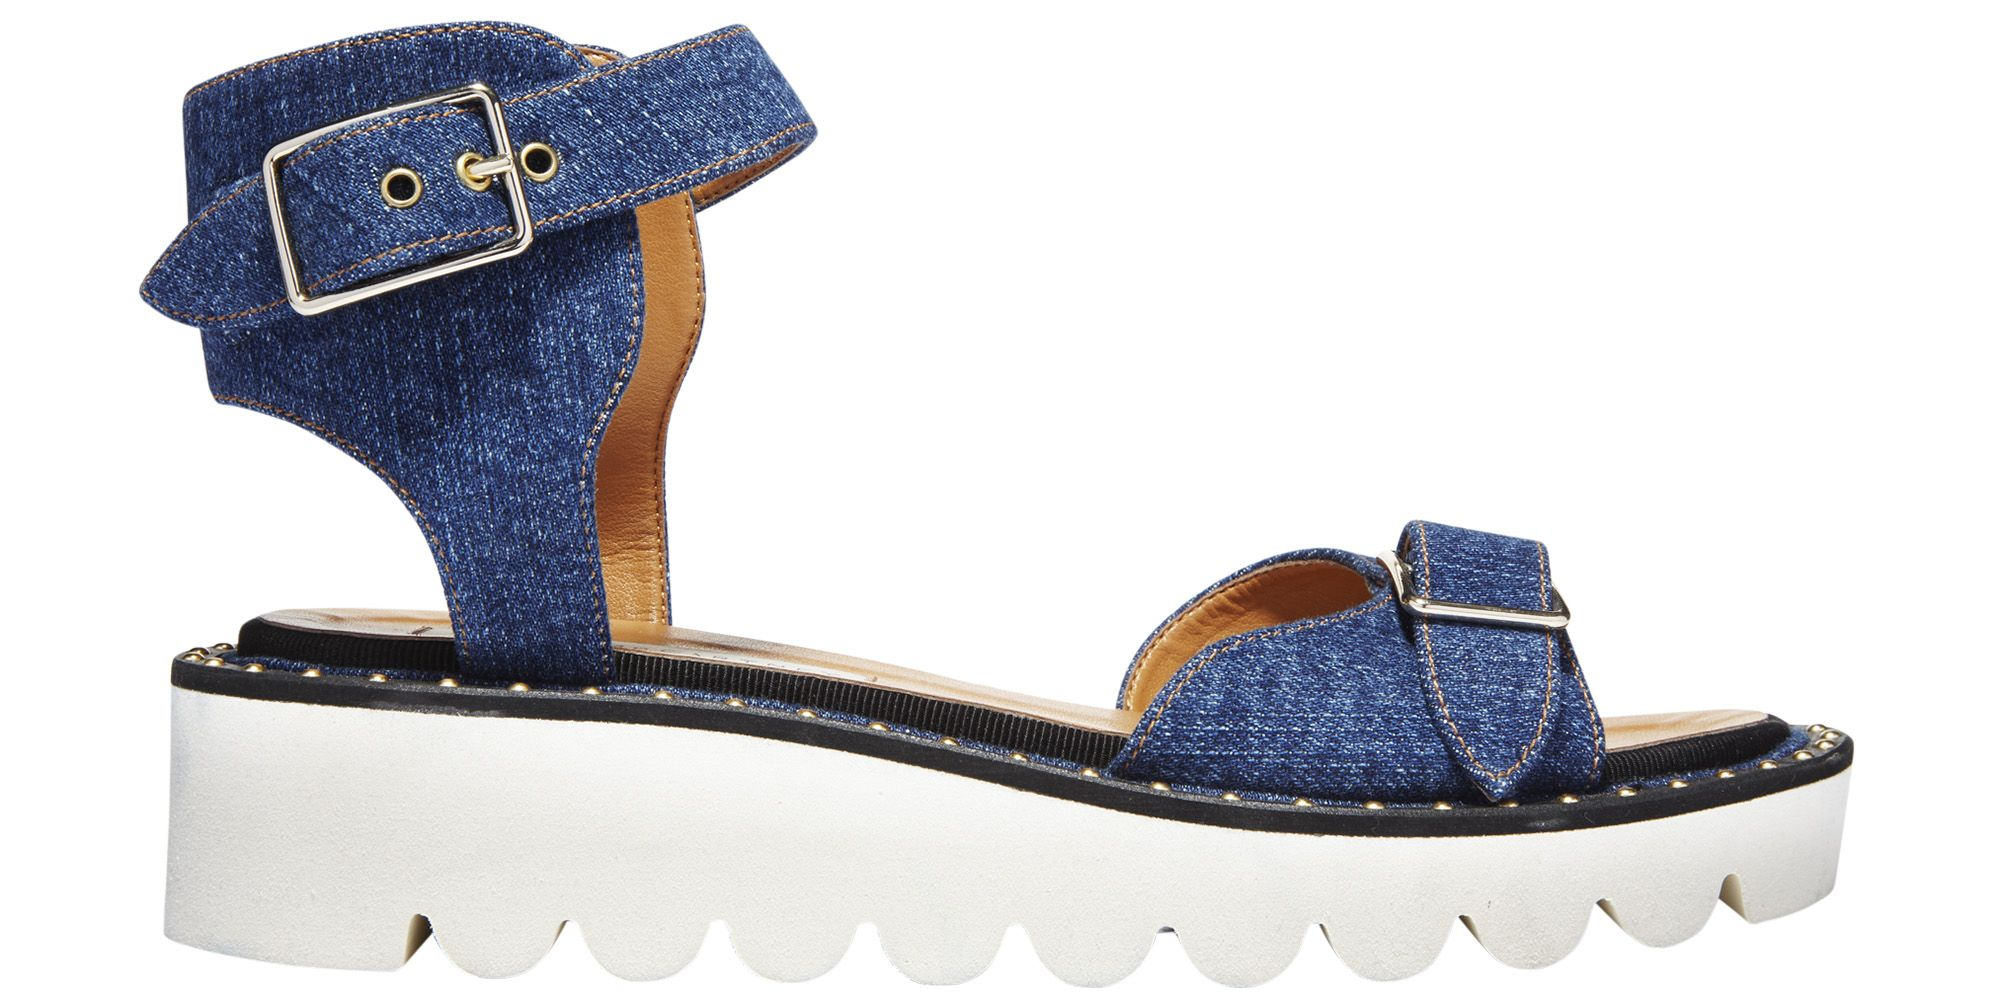 "<p><strong>Stella McCartney </strong>sandal, $965, <a href=""http://shopBAZAAR.com"" target=""_blank"">shopBAZAAR.com</a>. </p>"